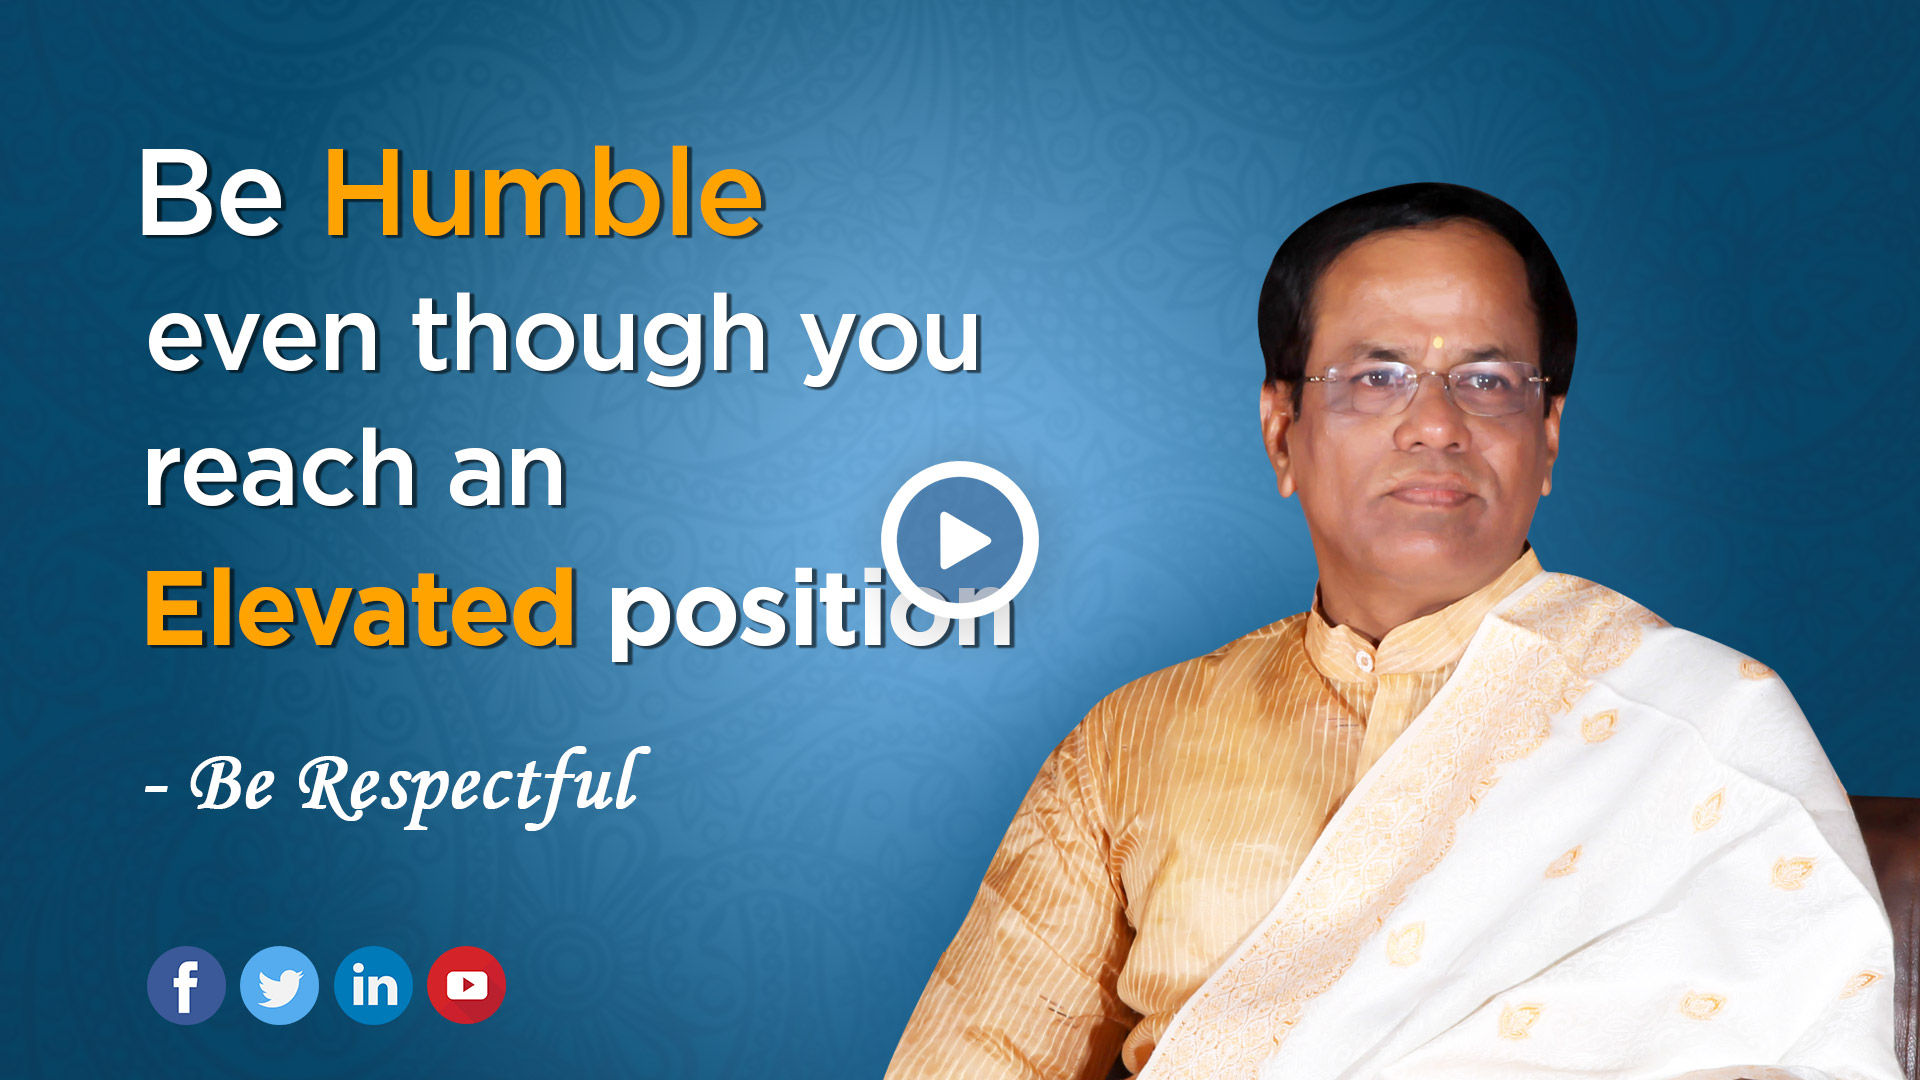 Be Humble Even Though You Have Reached an Elevated Position